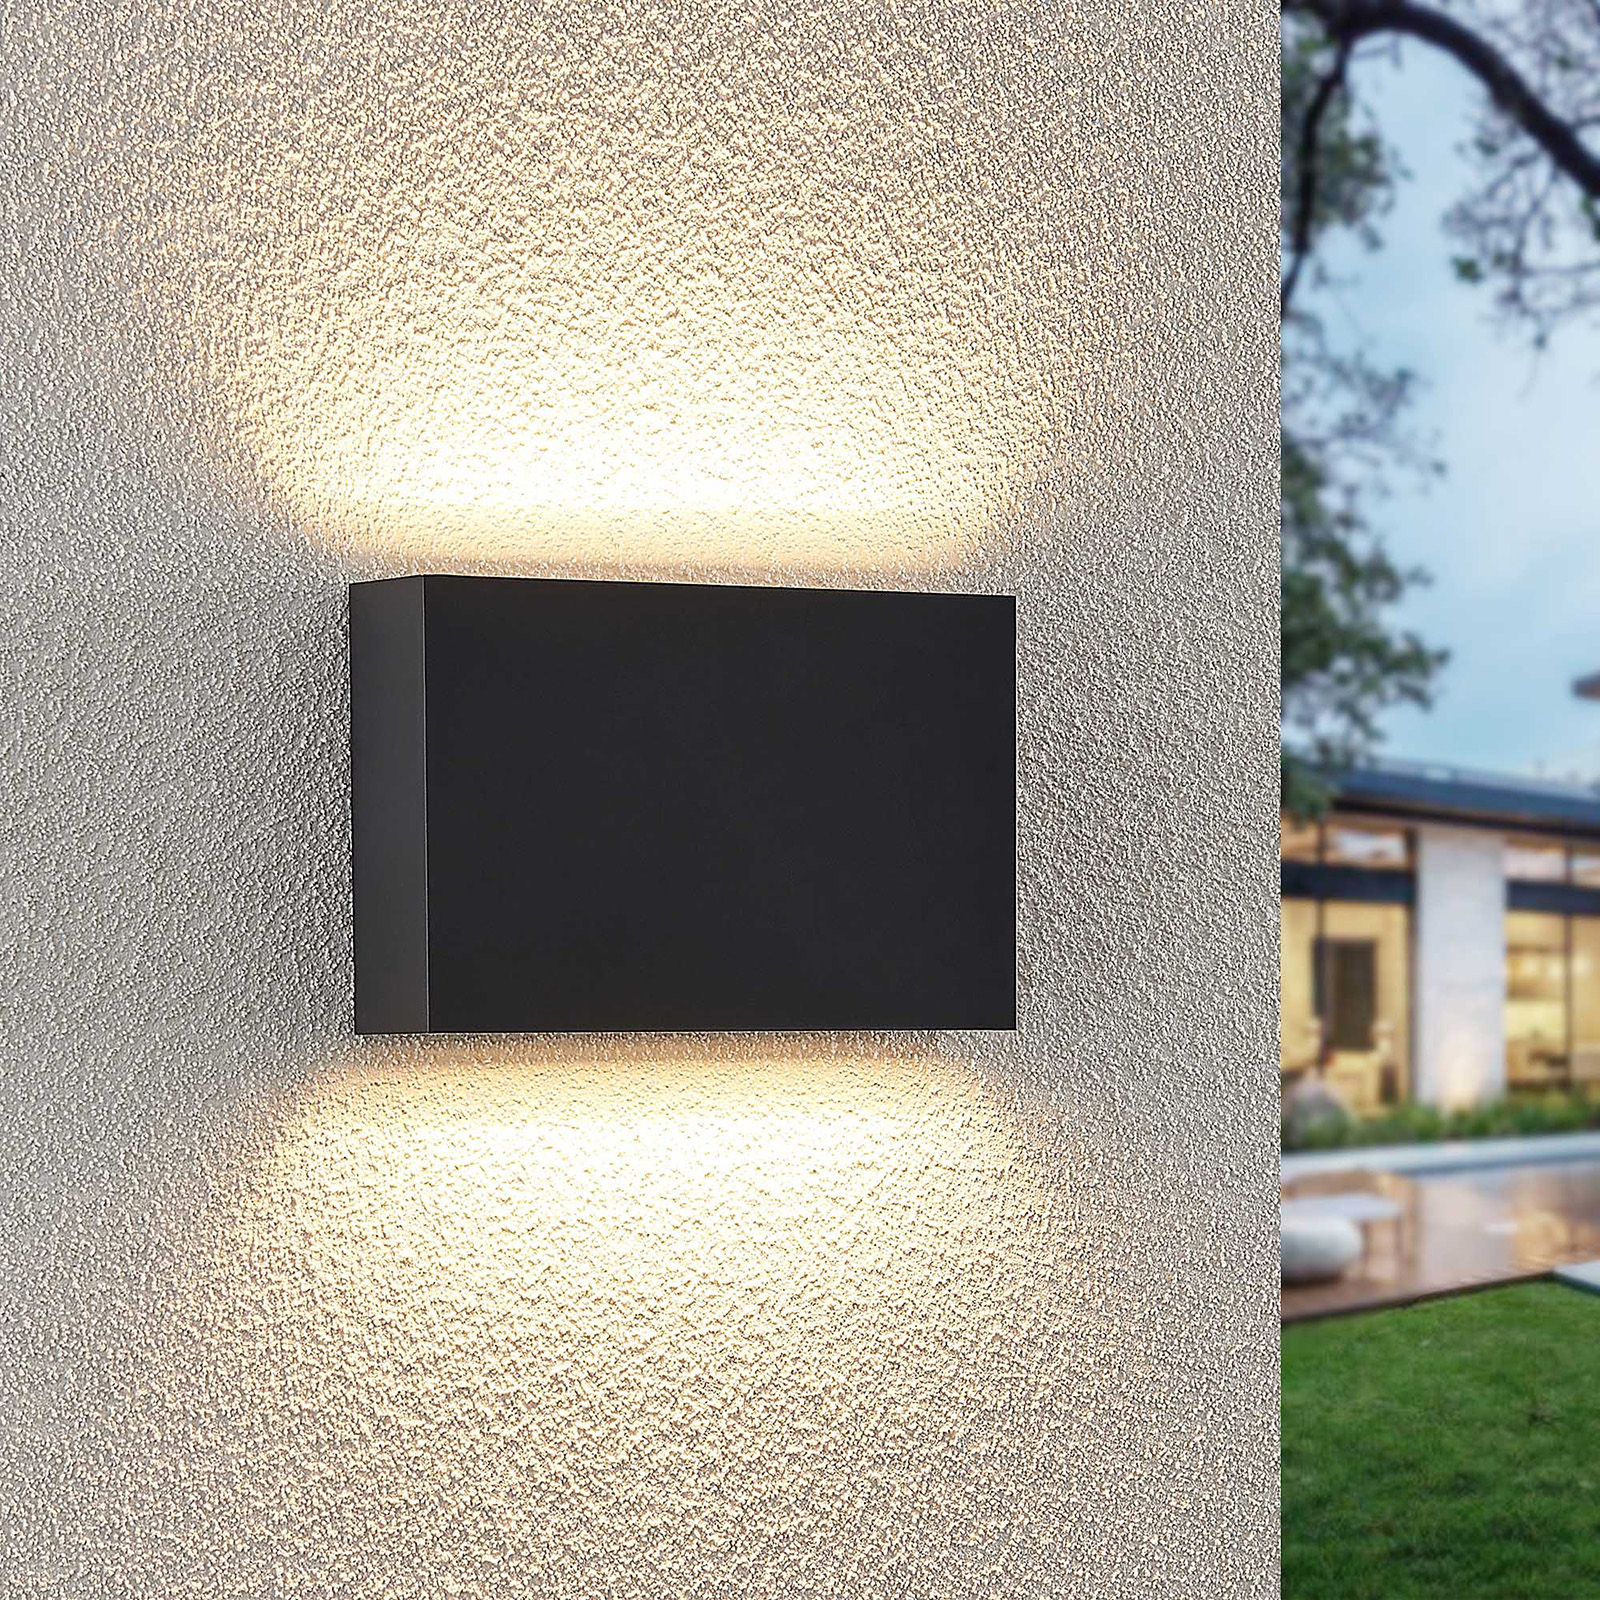 Lindby Jarte utendørs LED-vegglampe, 20 cm up/down